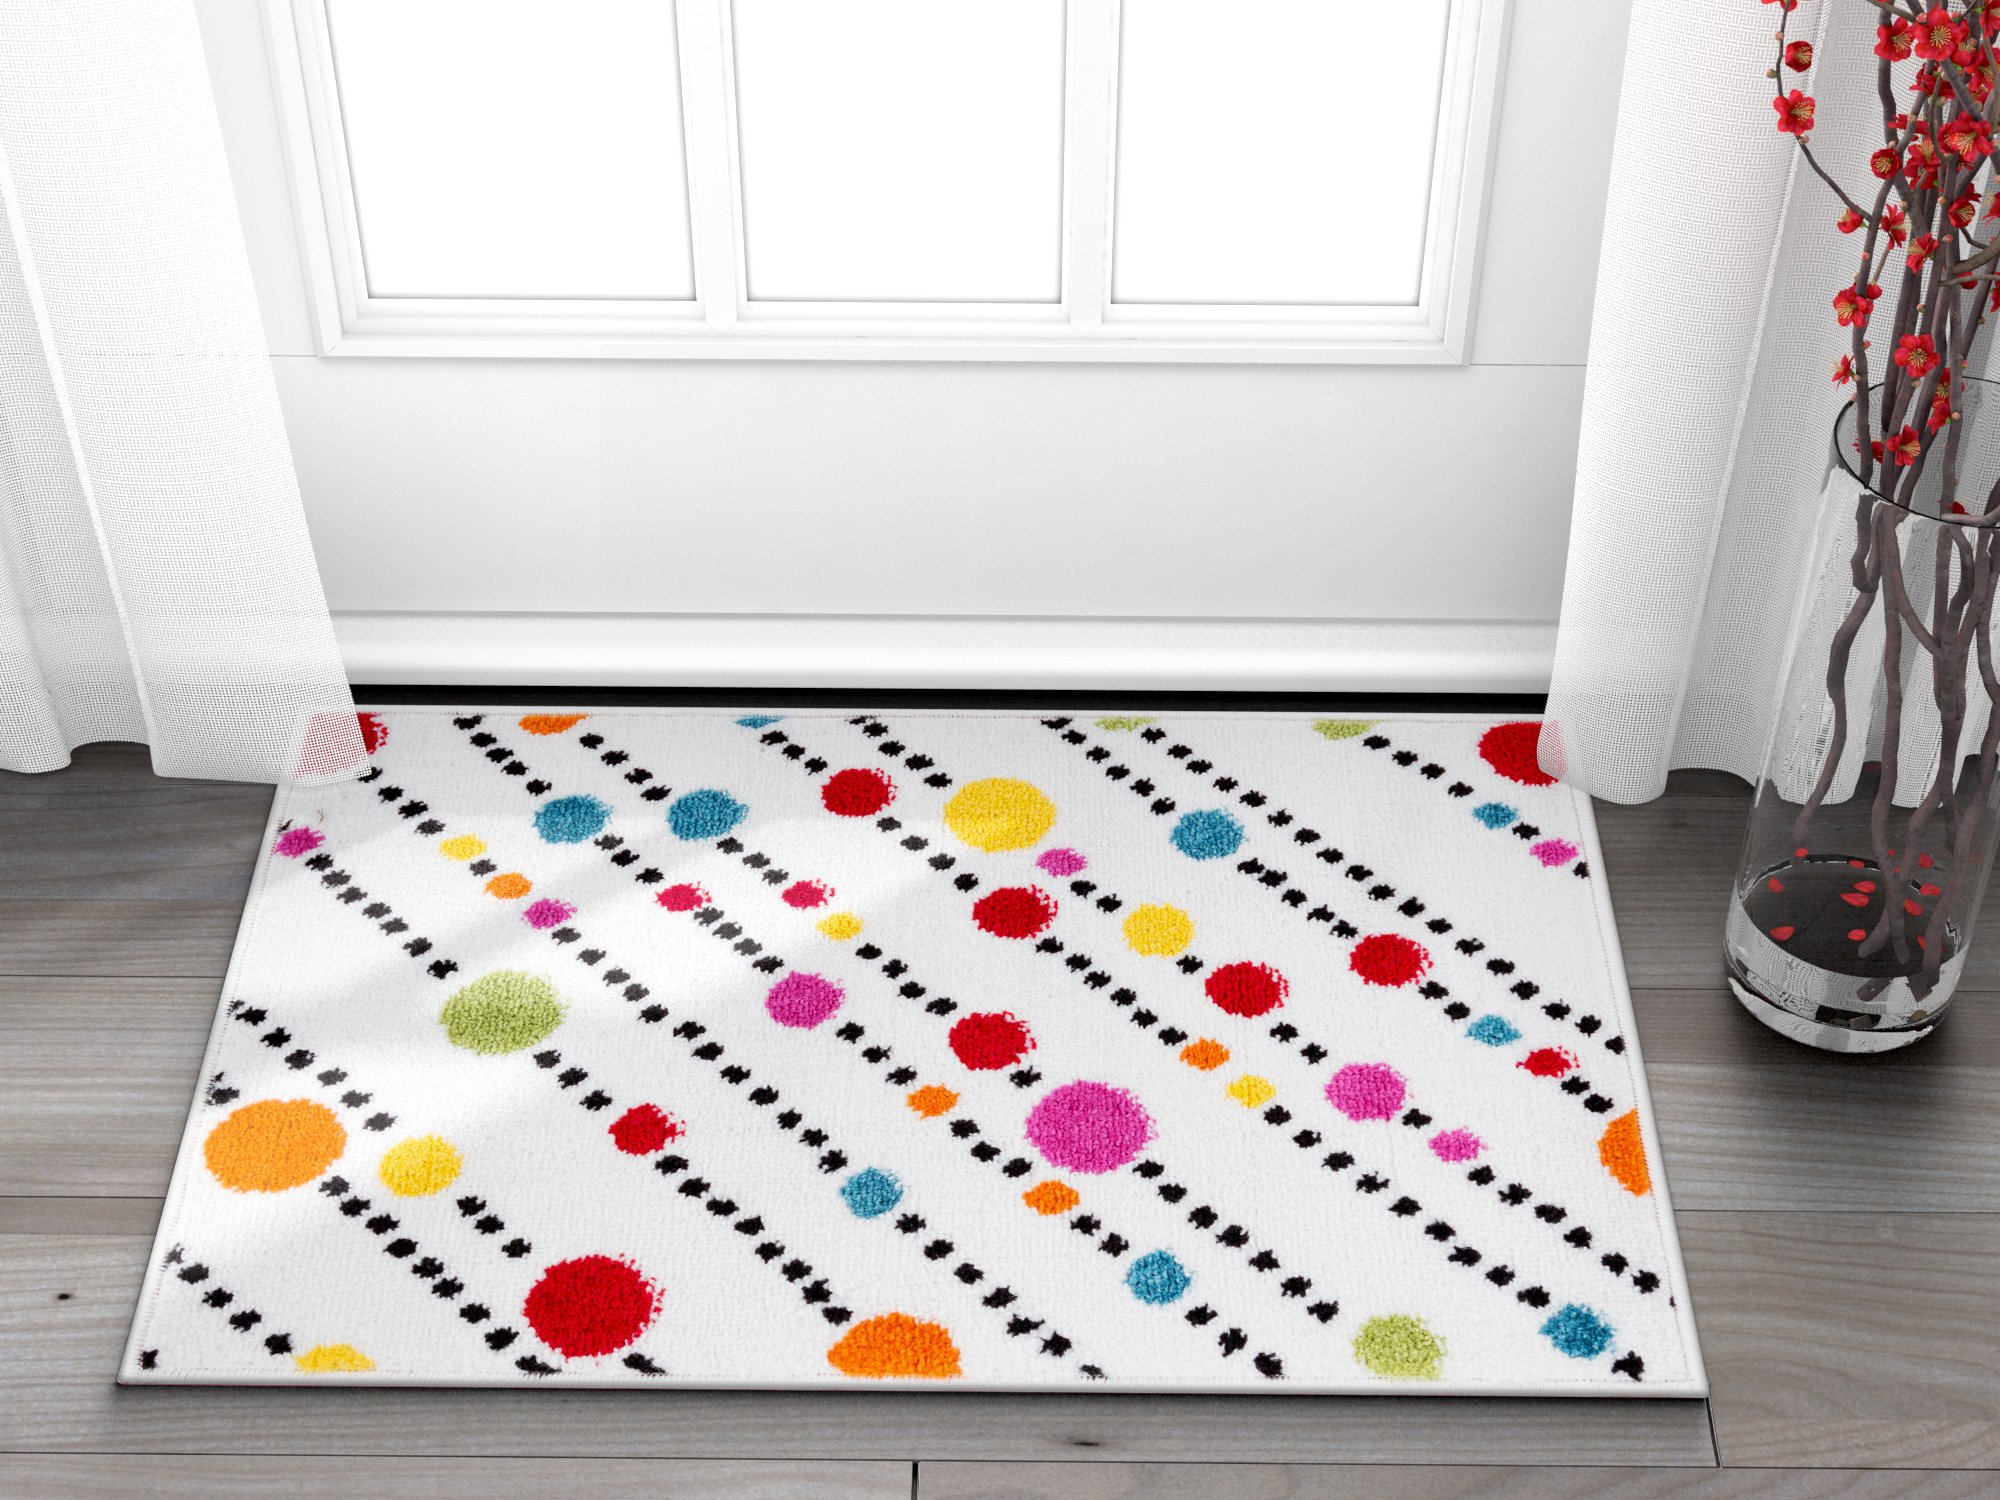 Well Woven Small Rug Mat Doormat Modern Kids Room Kitchen Rug Dandy Dots And Stripes Ivory 1'8'' x 2'7'' Accent Area Rug Entry Way Bright Carpet Bathroom Soft Durable